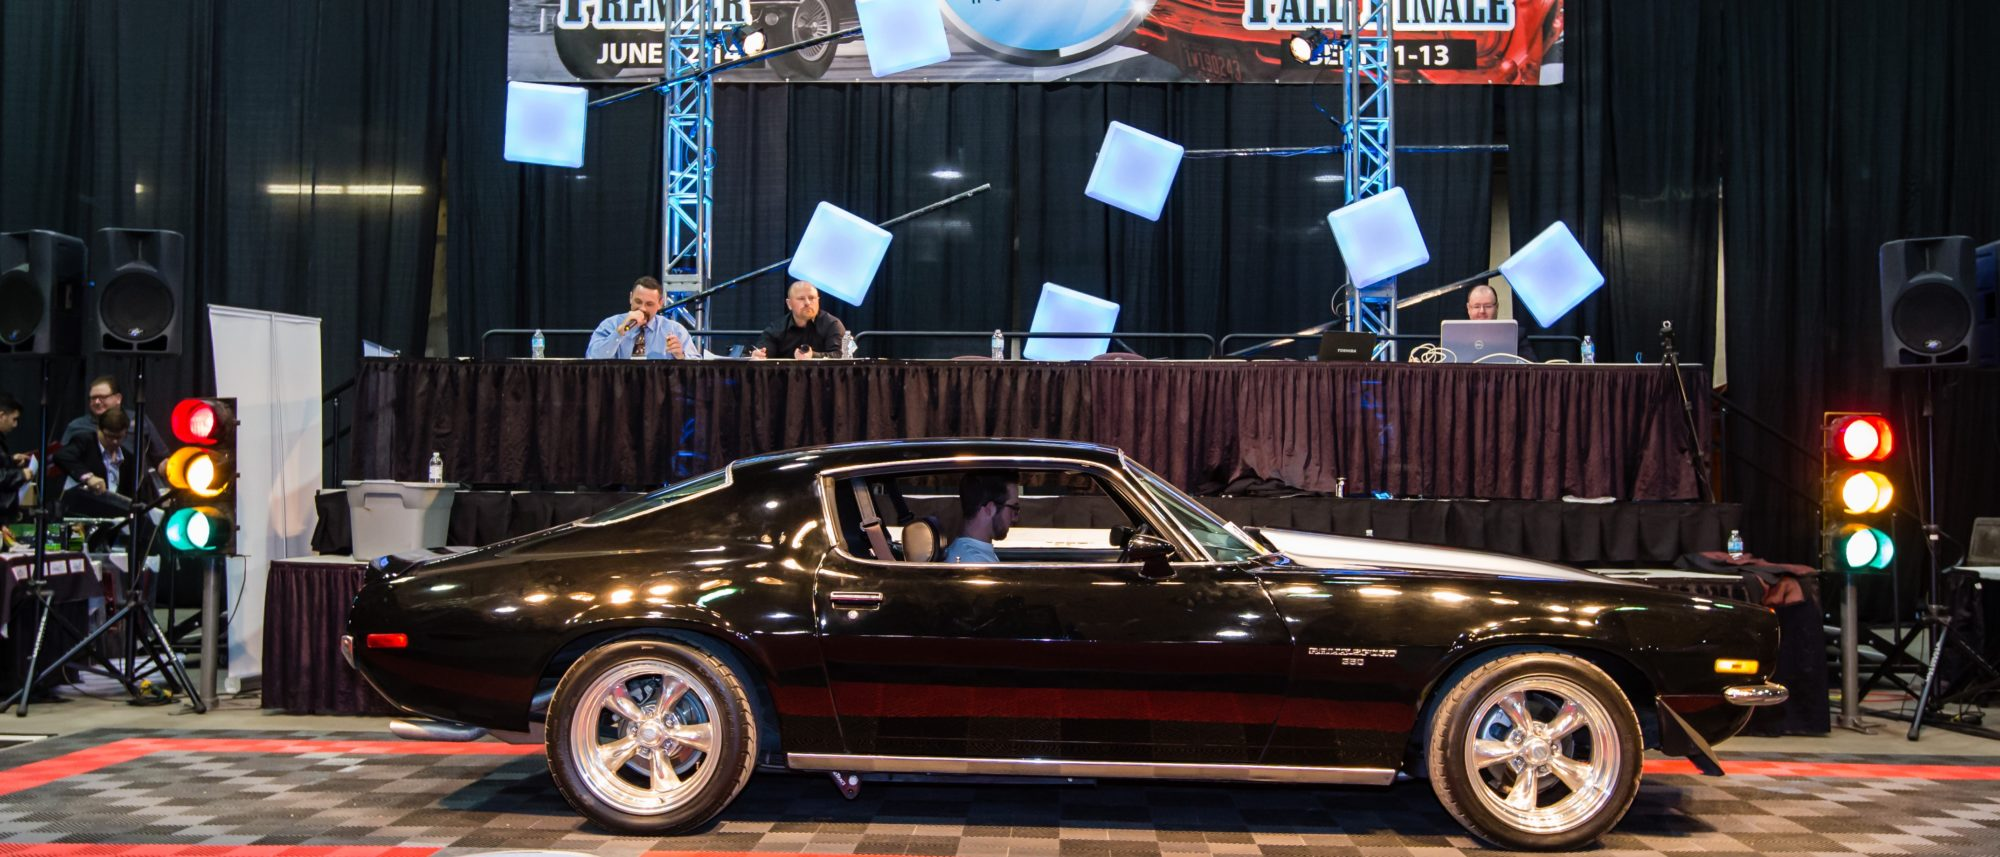 EG Collector Car Auction 2015 - Edmonton Motorshow